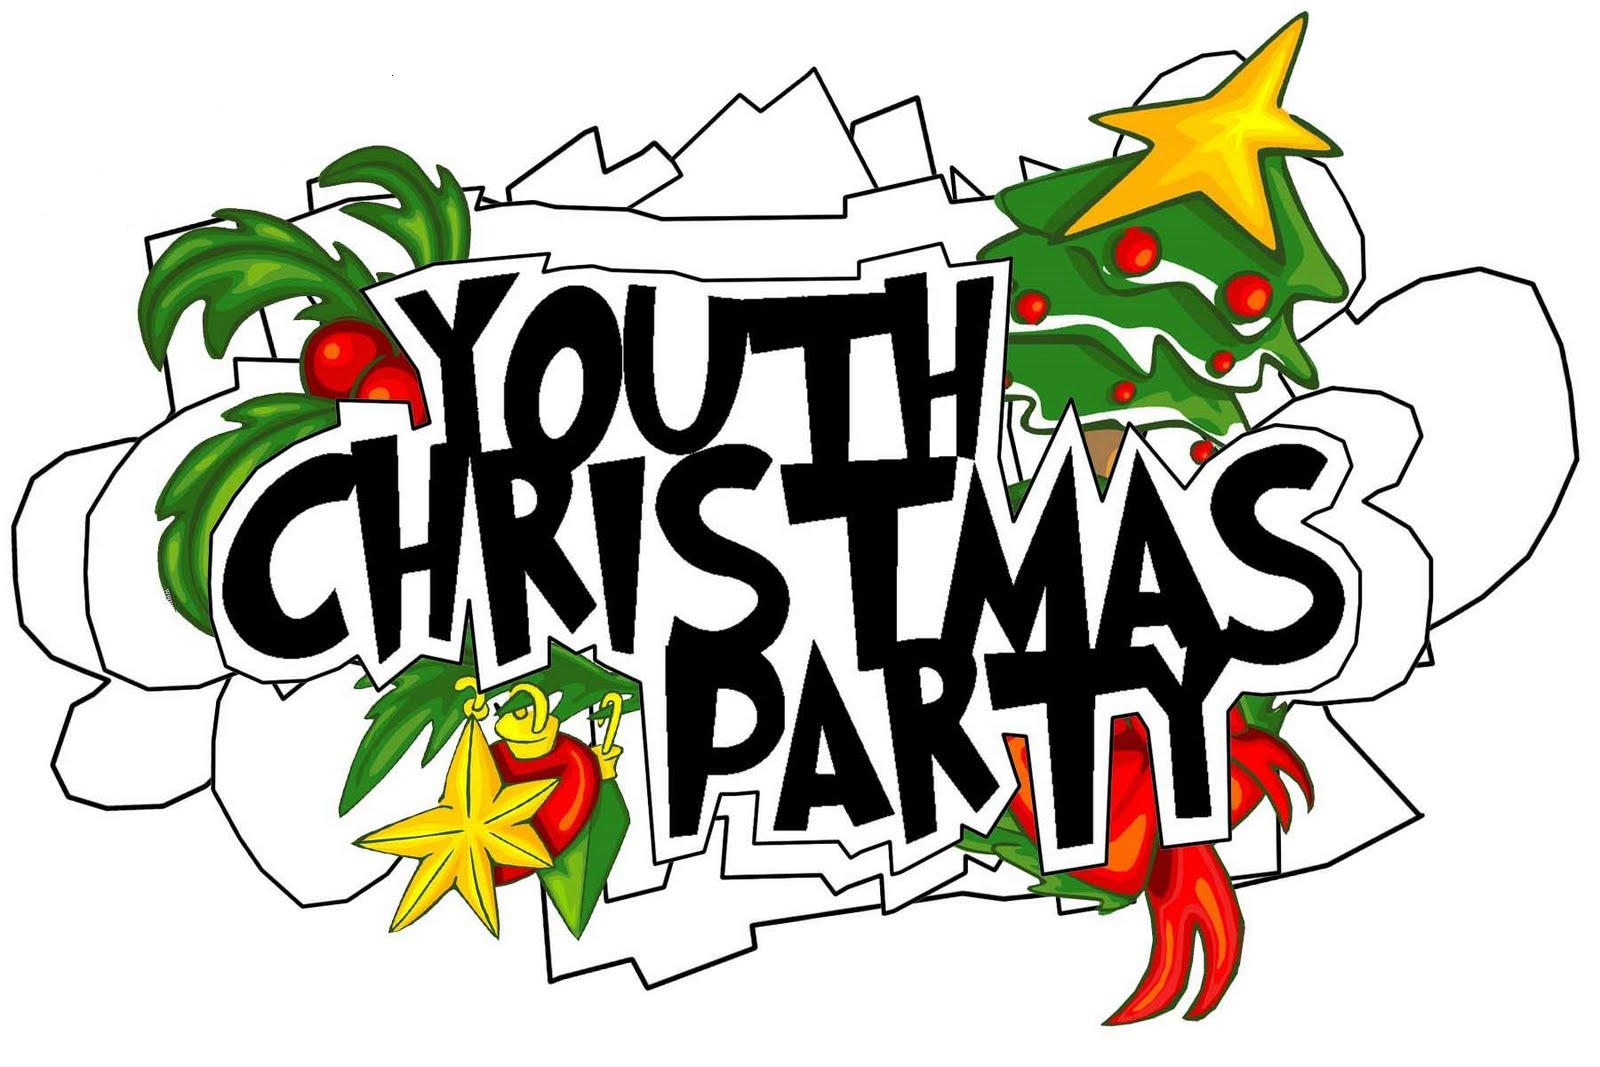 Youth christmas party clipart.